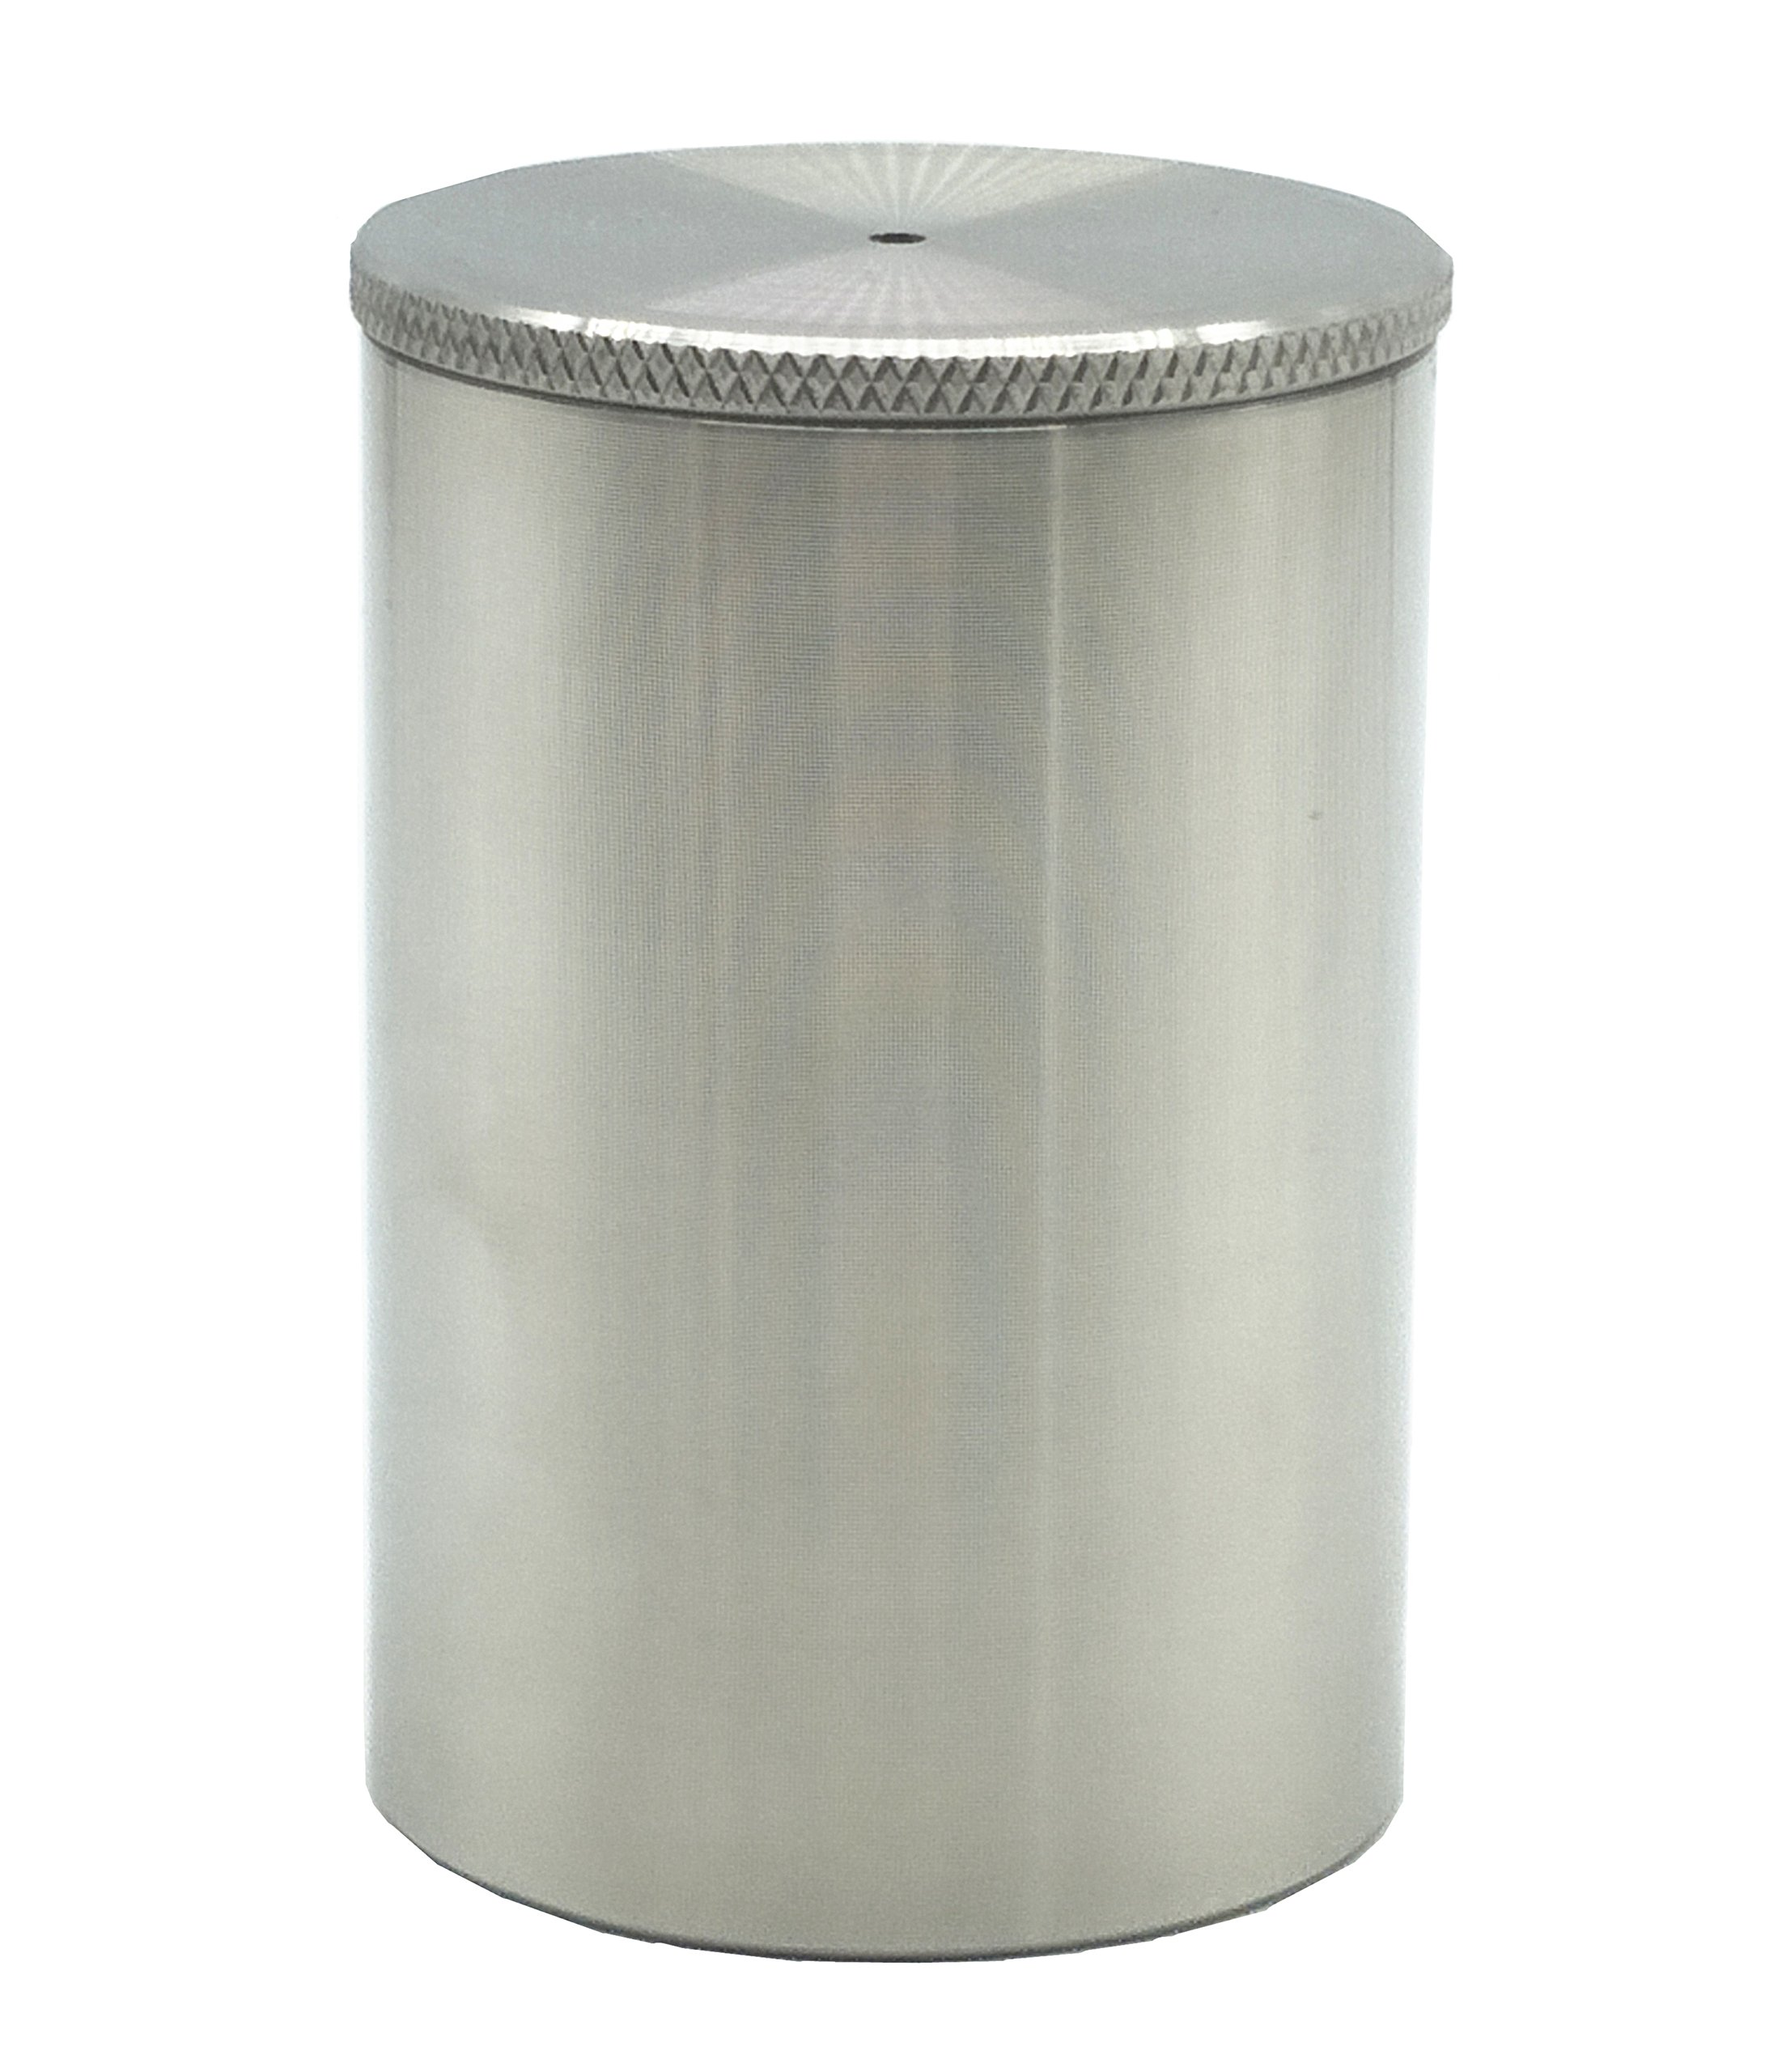 NEWTRY QBB Stainless Steel Paint Density Specific Gravity Cup for Various Kinds Of Coatings And Auxiliary Materials, Oil and Other Liquids (100ml)